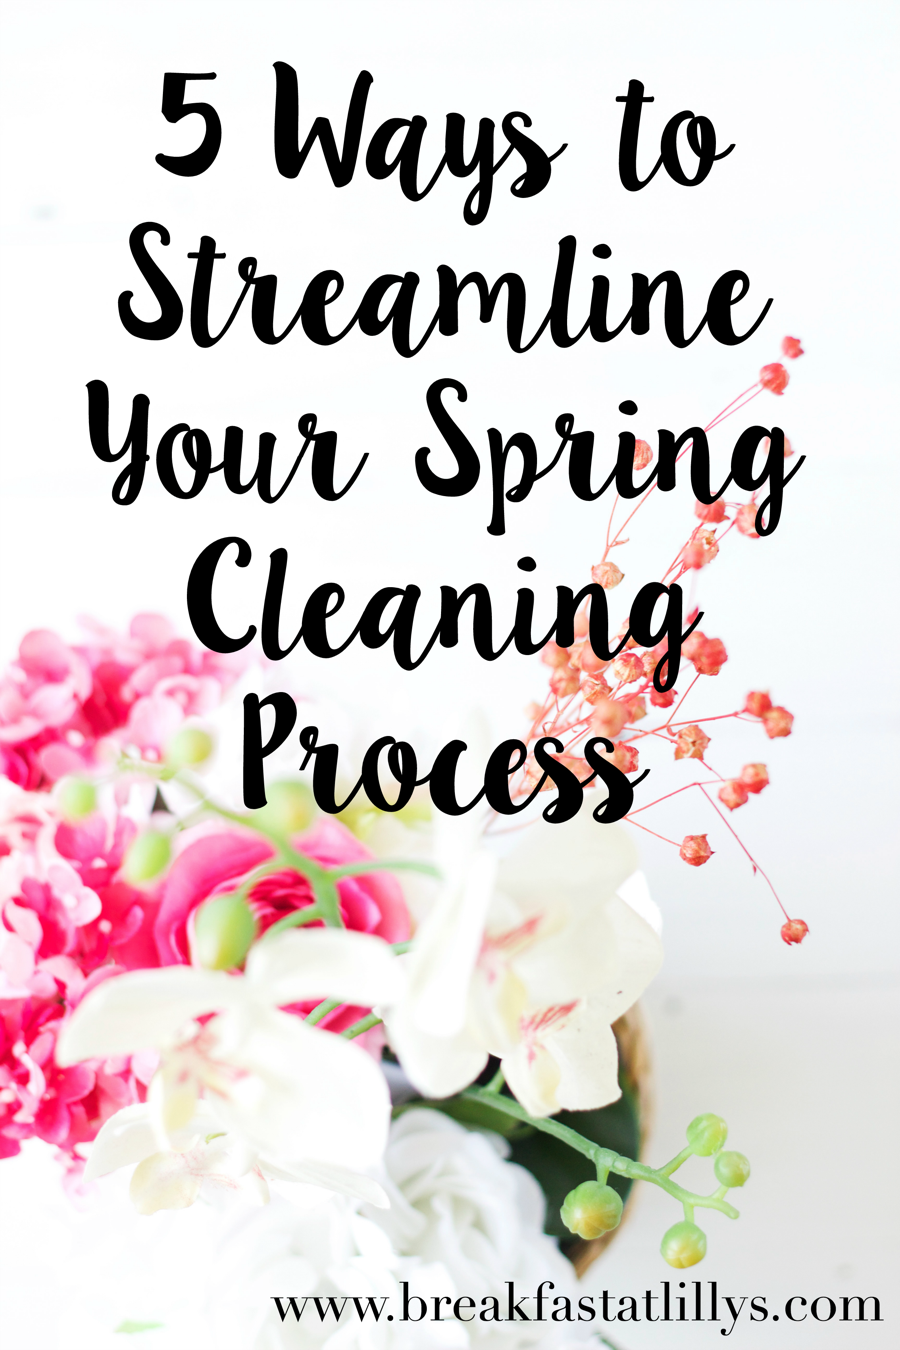 5 Ways to Streamline Your Spring Cleaning